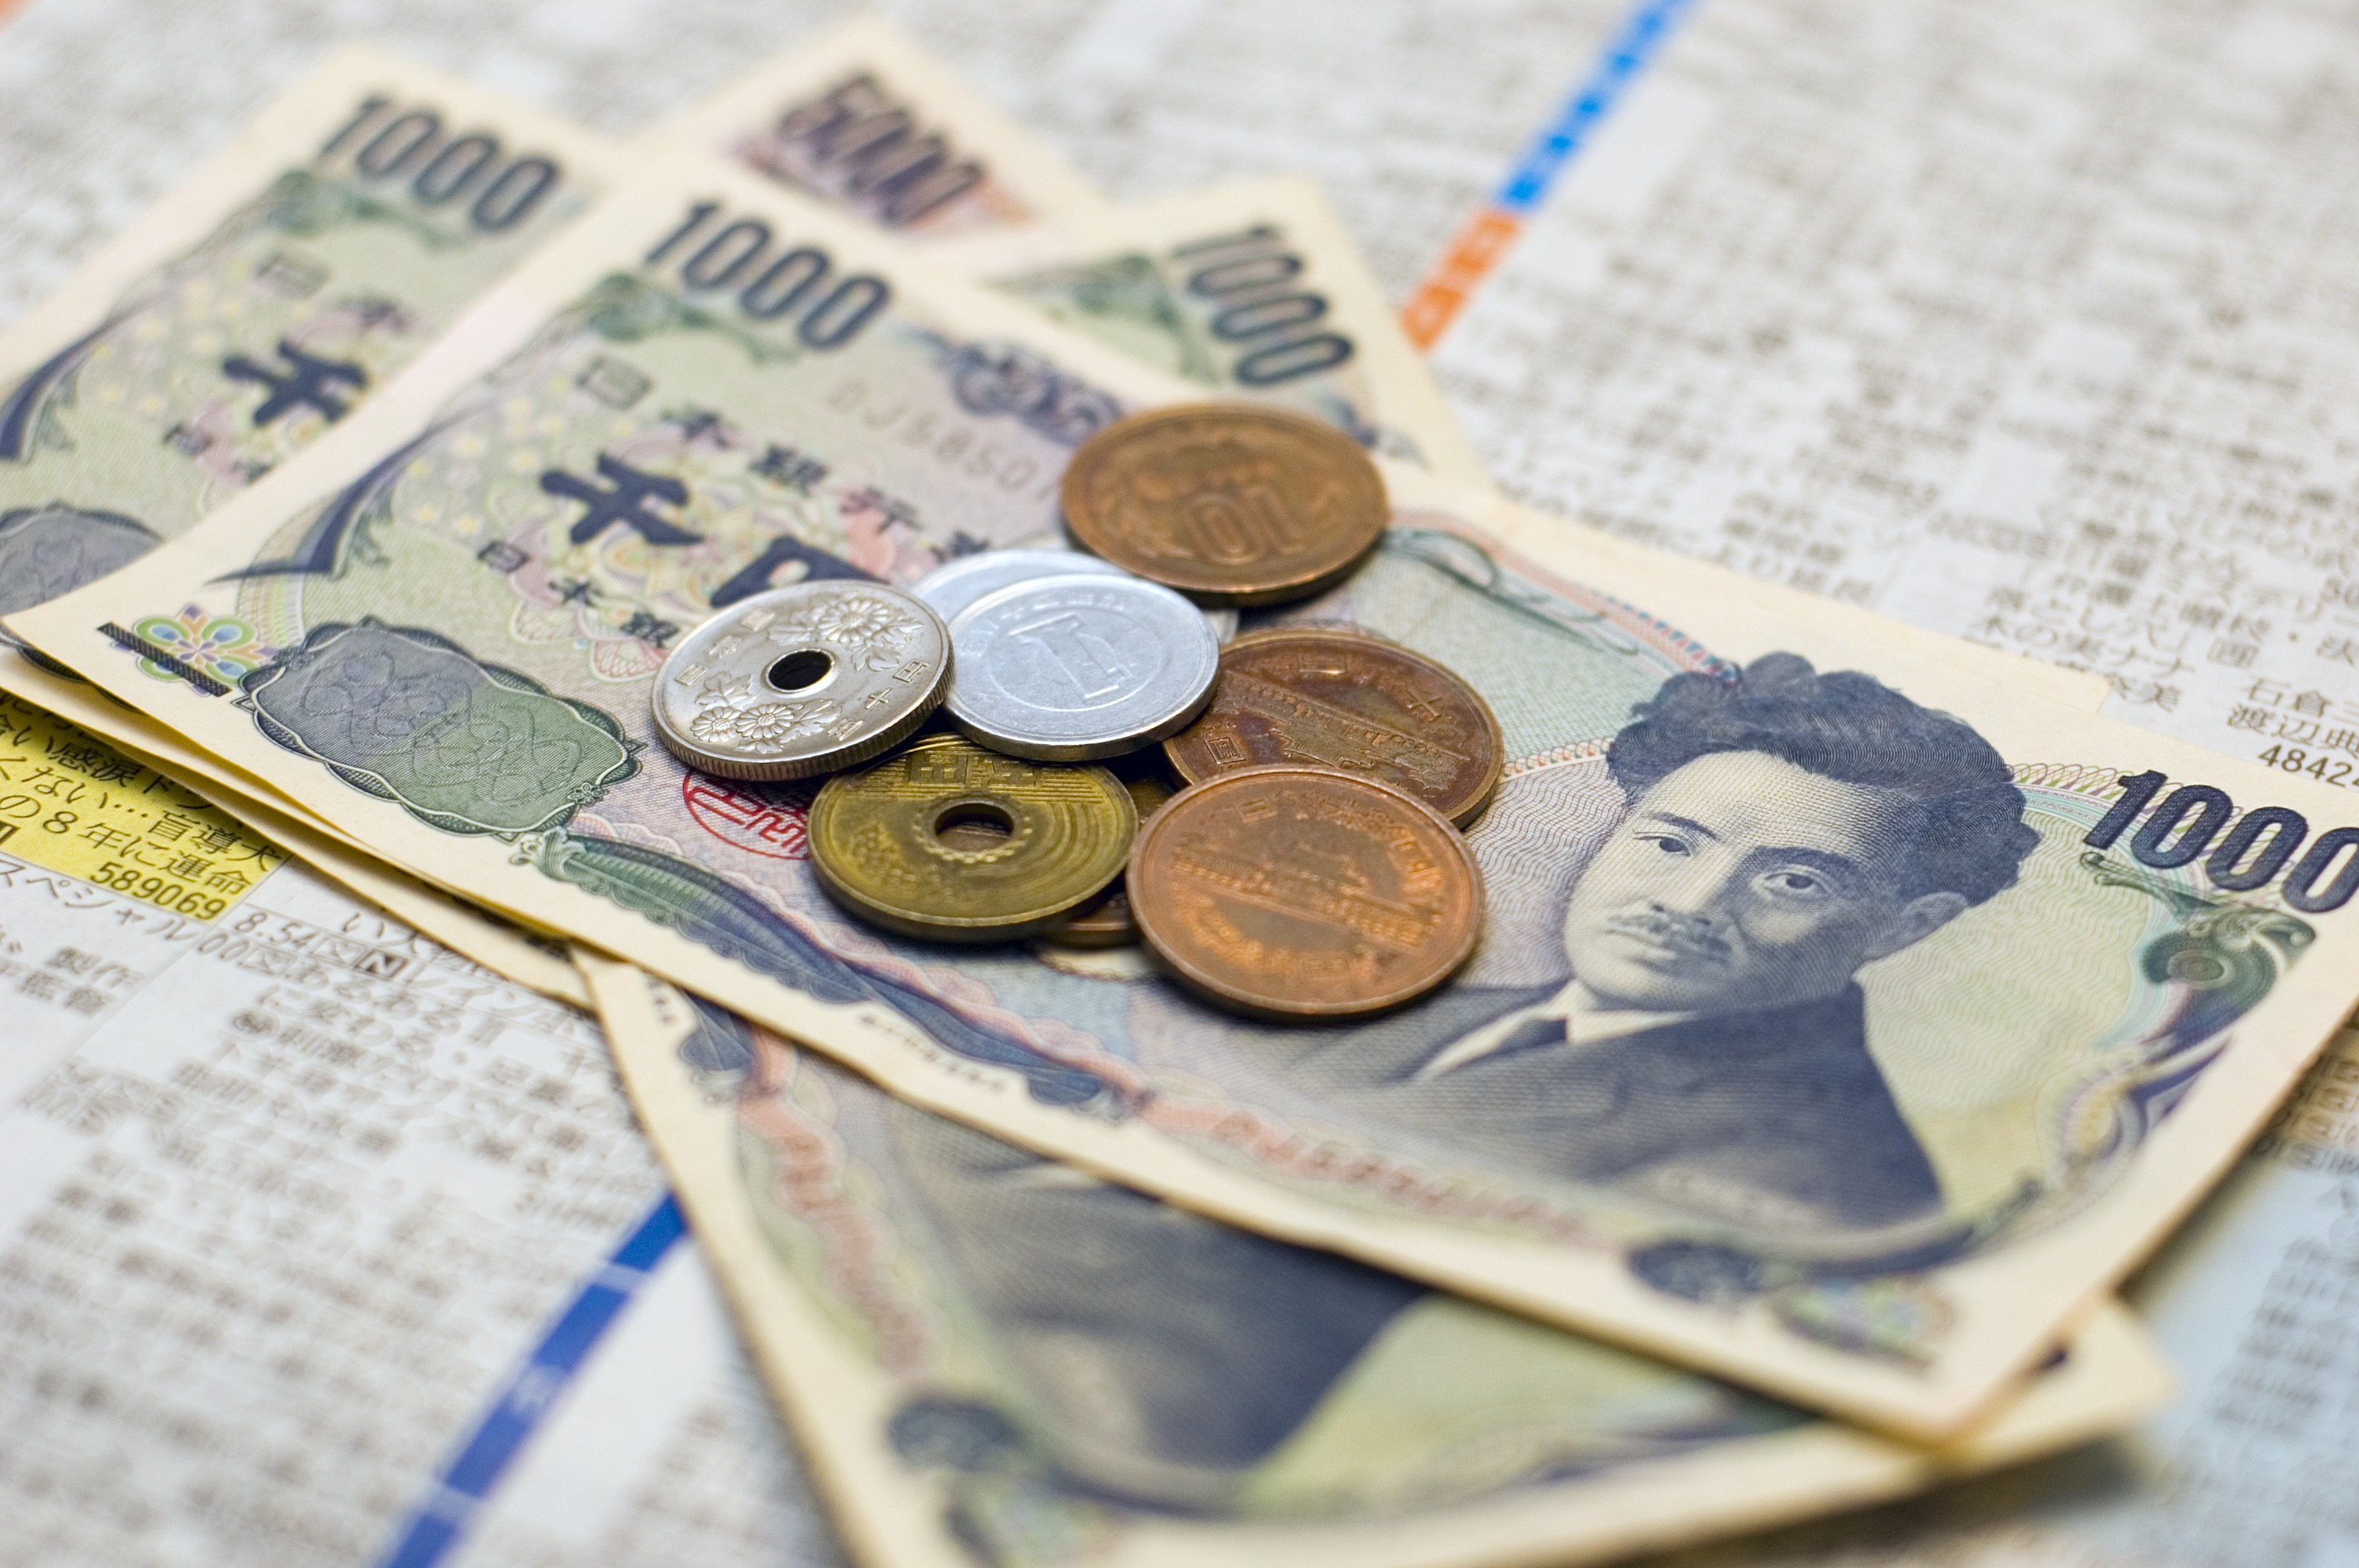 Assorted Currency of Japan